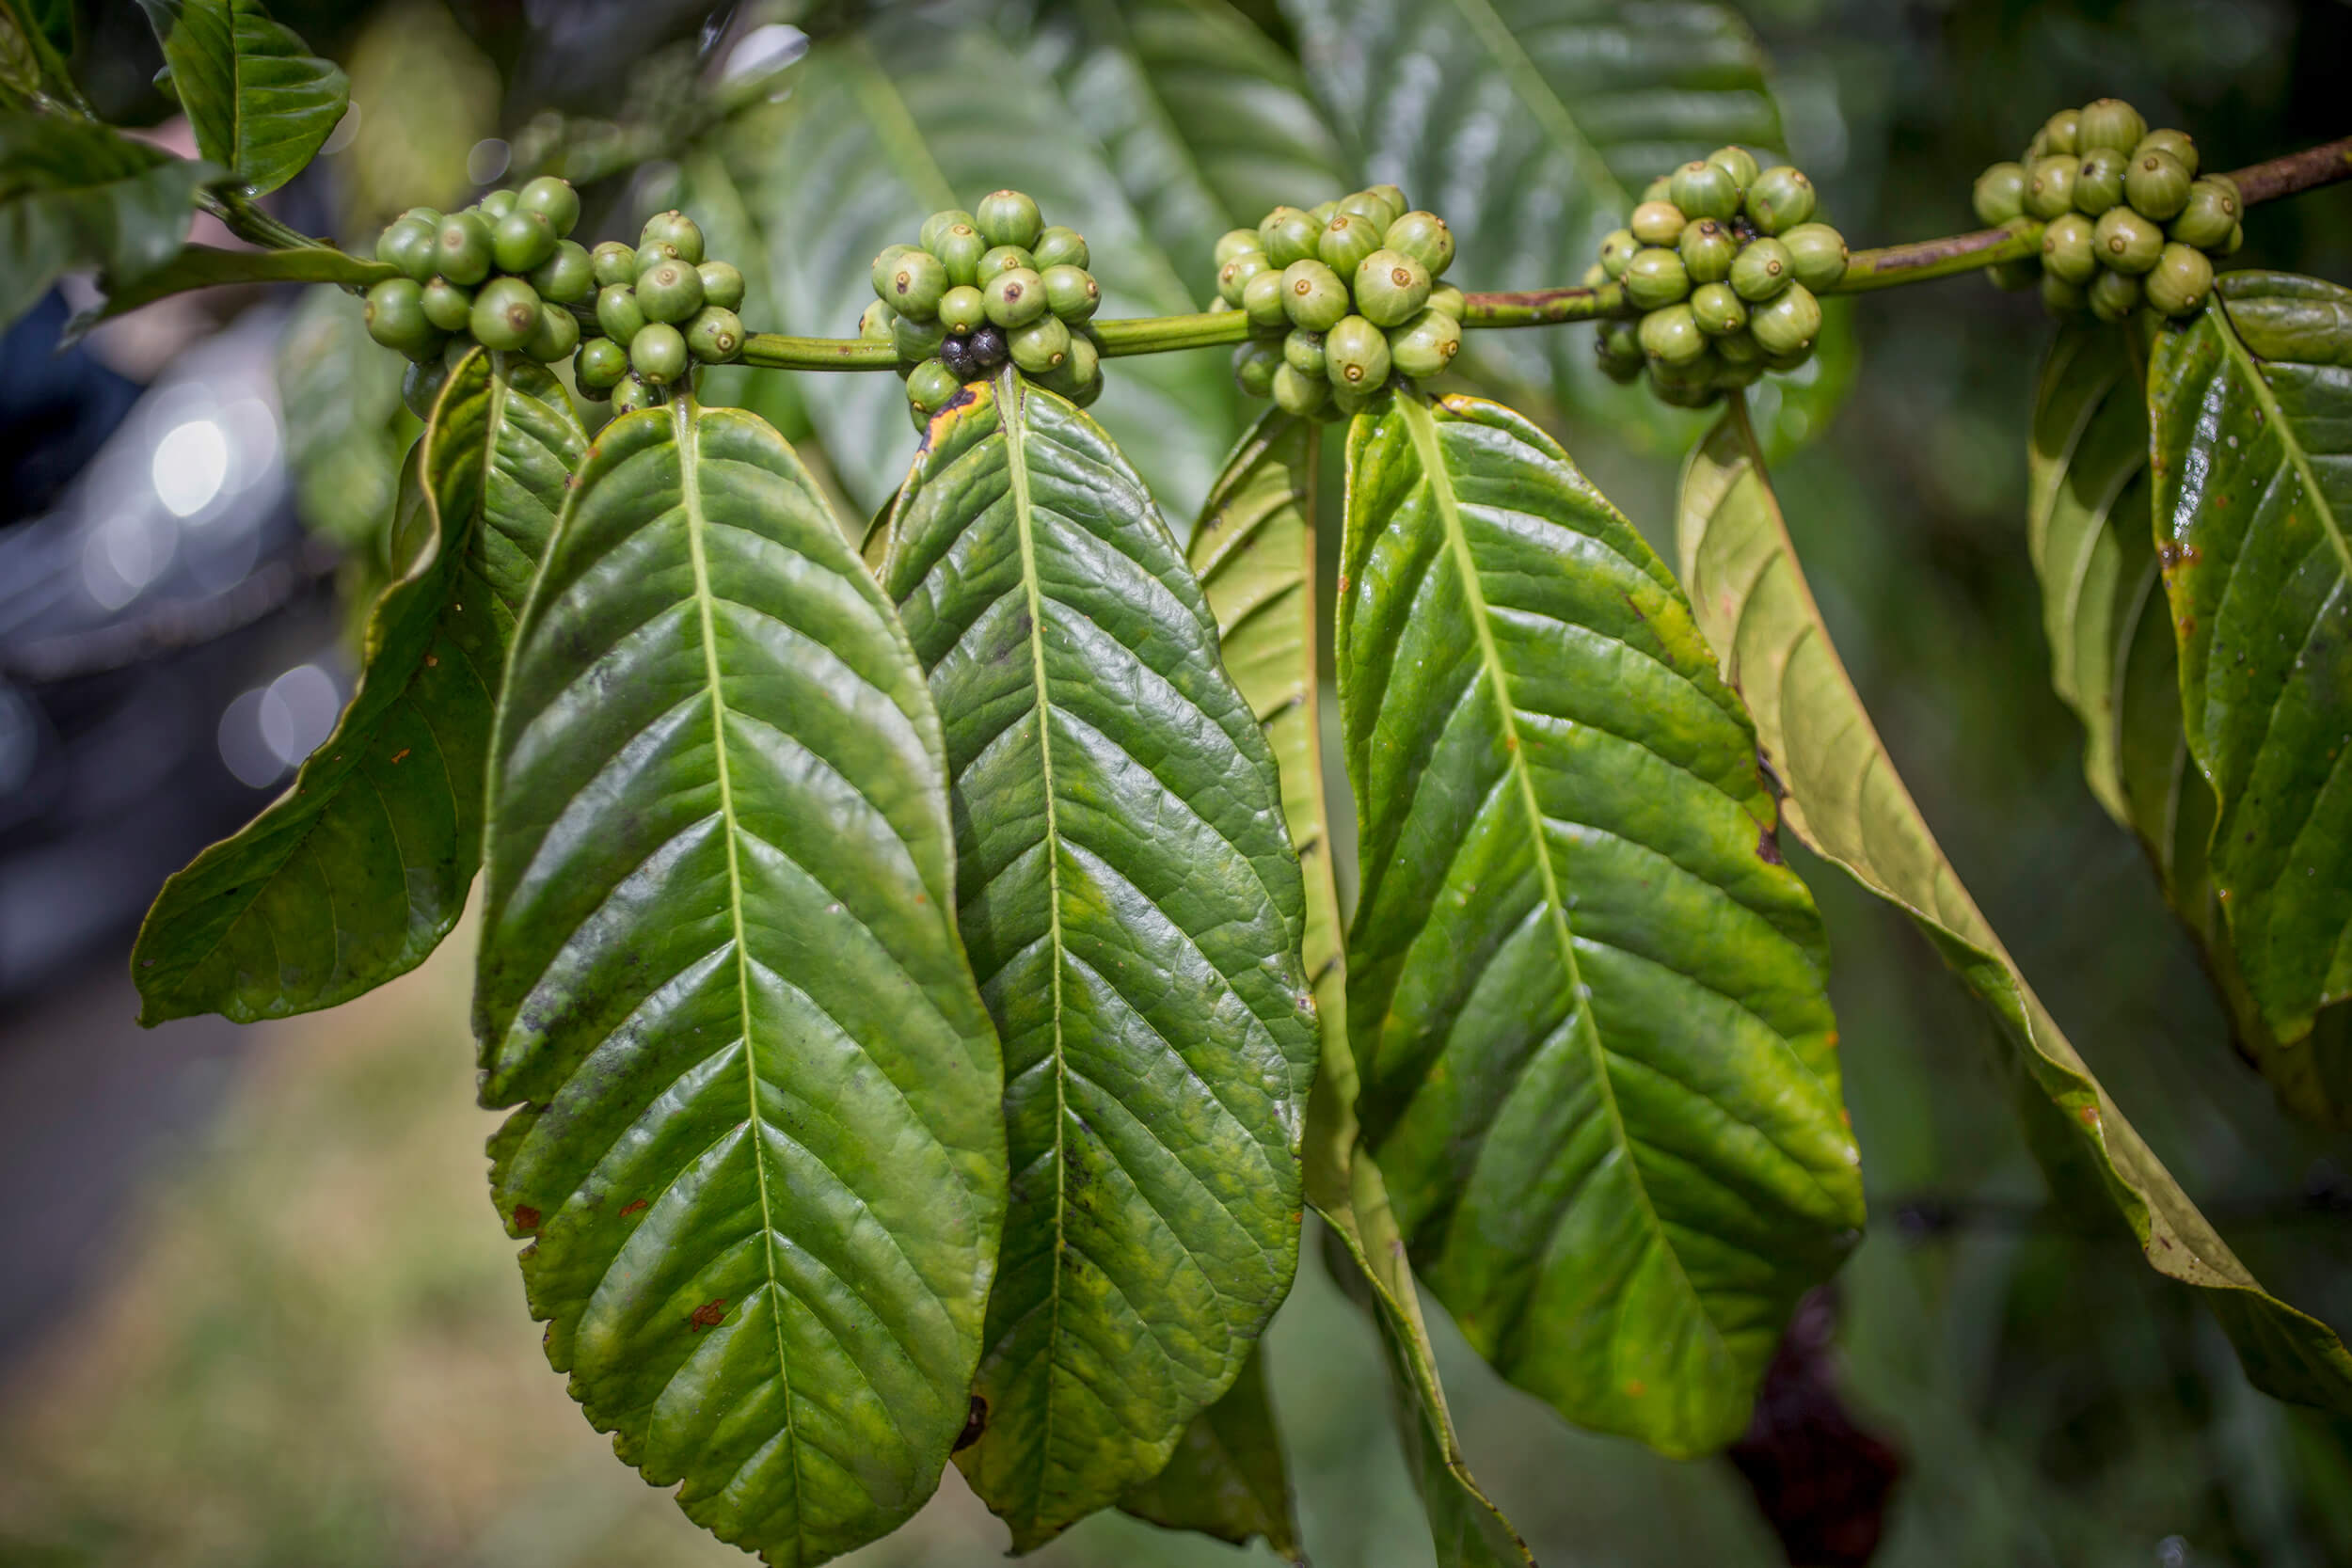 Coffee of the Robusta variety